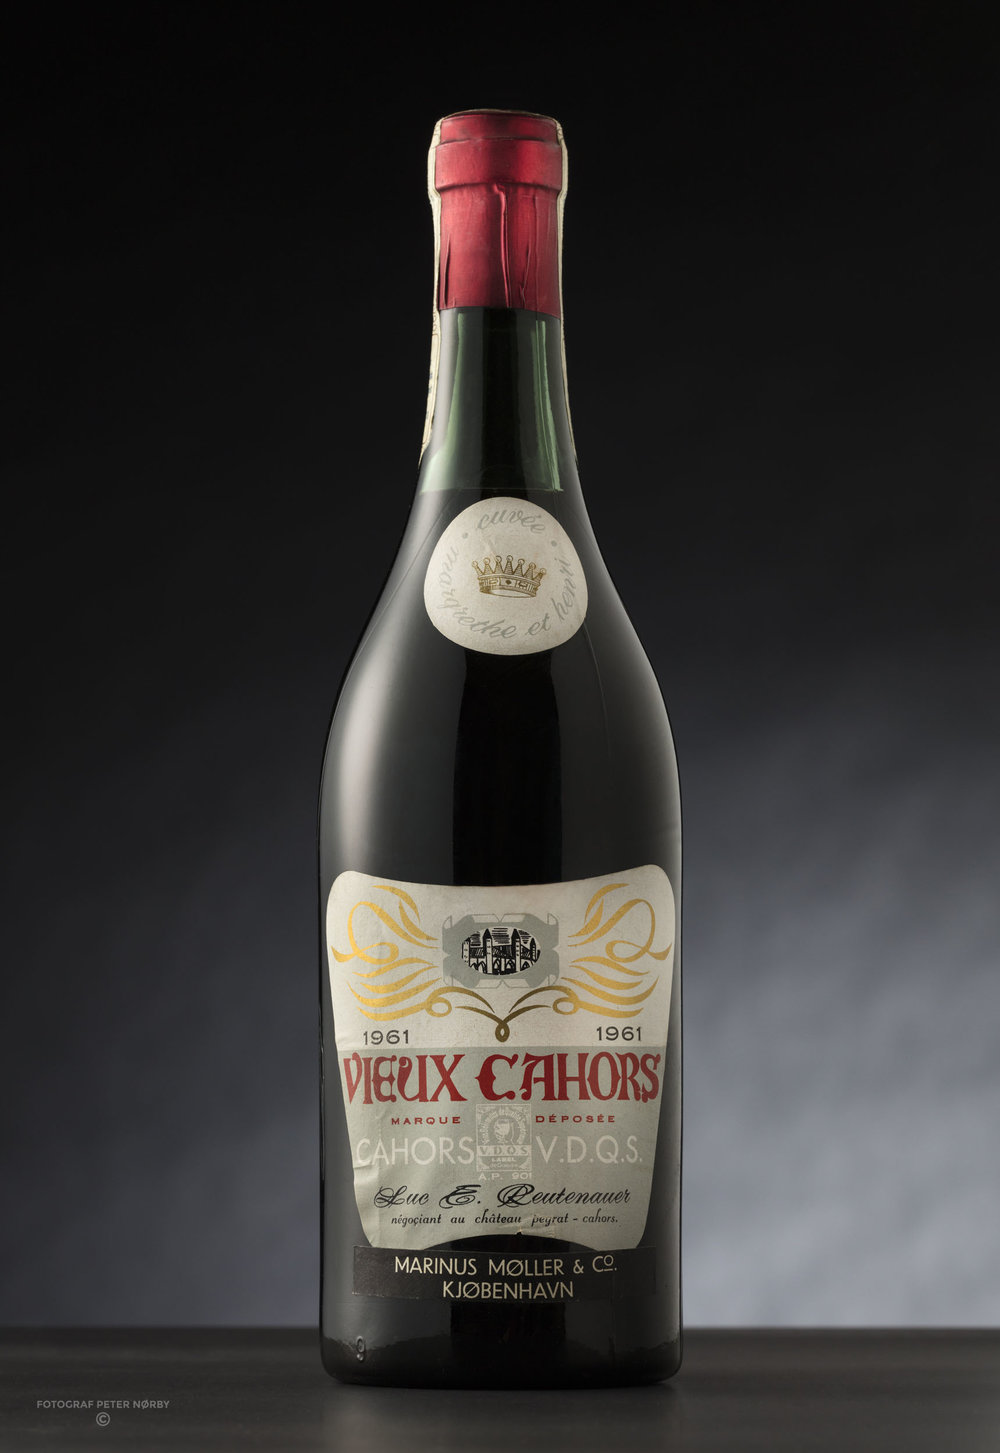 Vieux Cahors served at the wedding of HM The Queen and HRH The Prince Consort in 1961